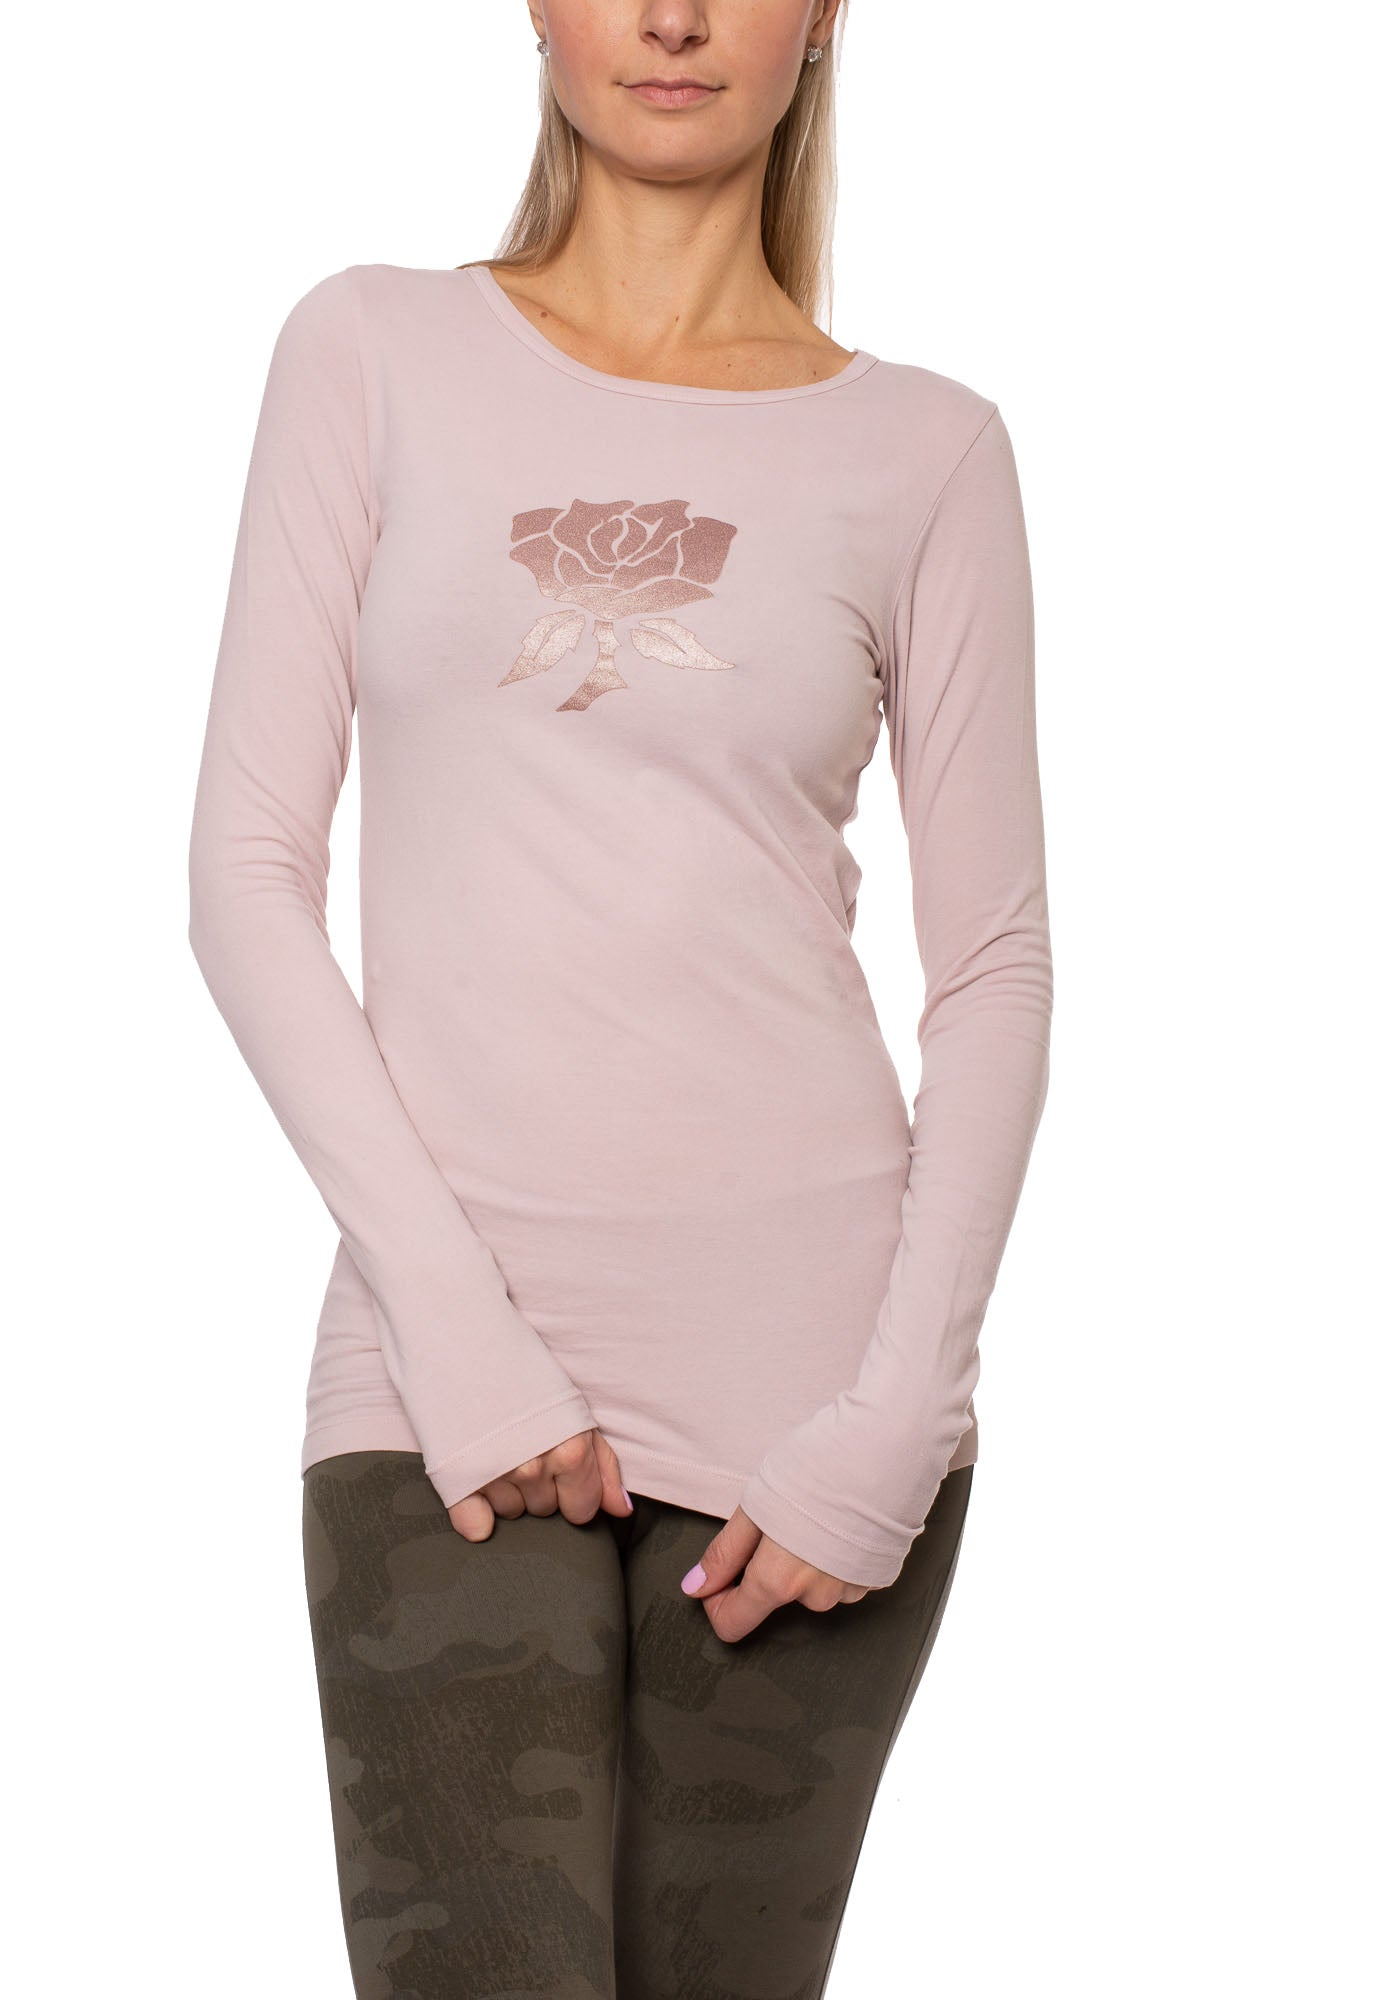 Supima/Lycra Long Sleeve Scoop Tee (Style SL-69-801, Rose w/Metalic Rose Gold Rose) by Hard Tail Forever